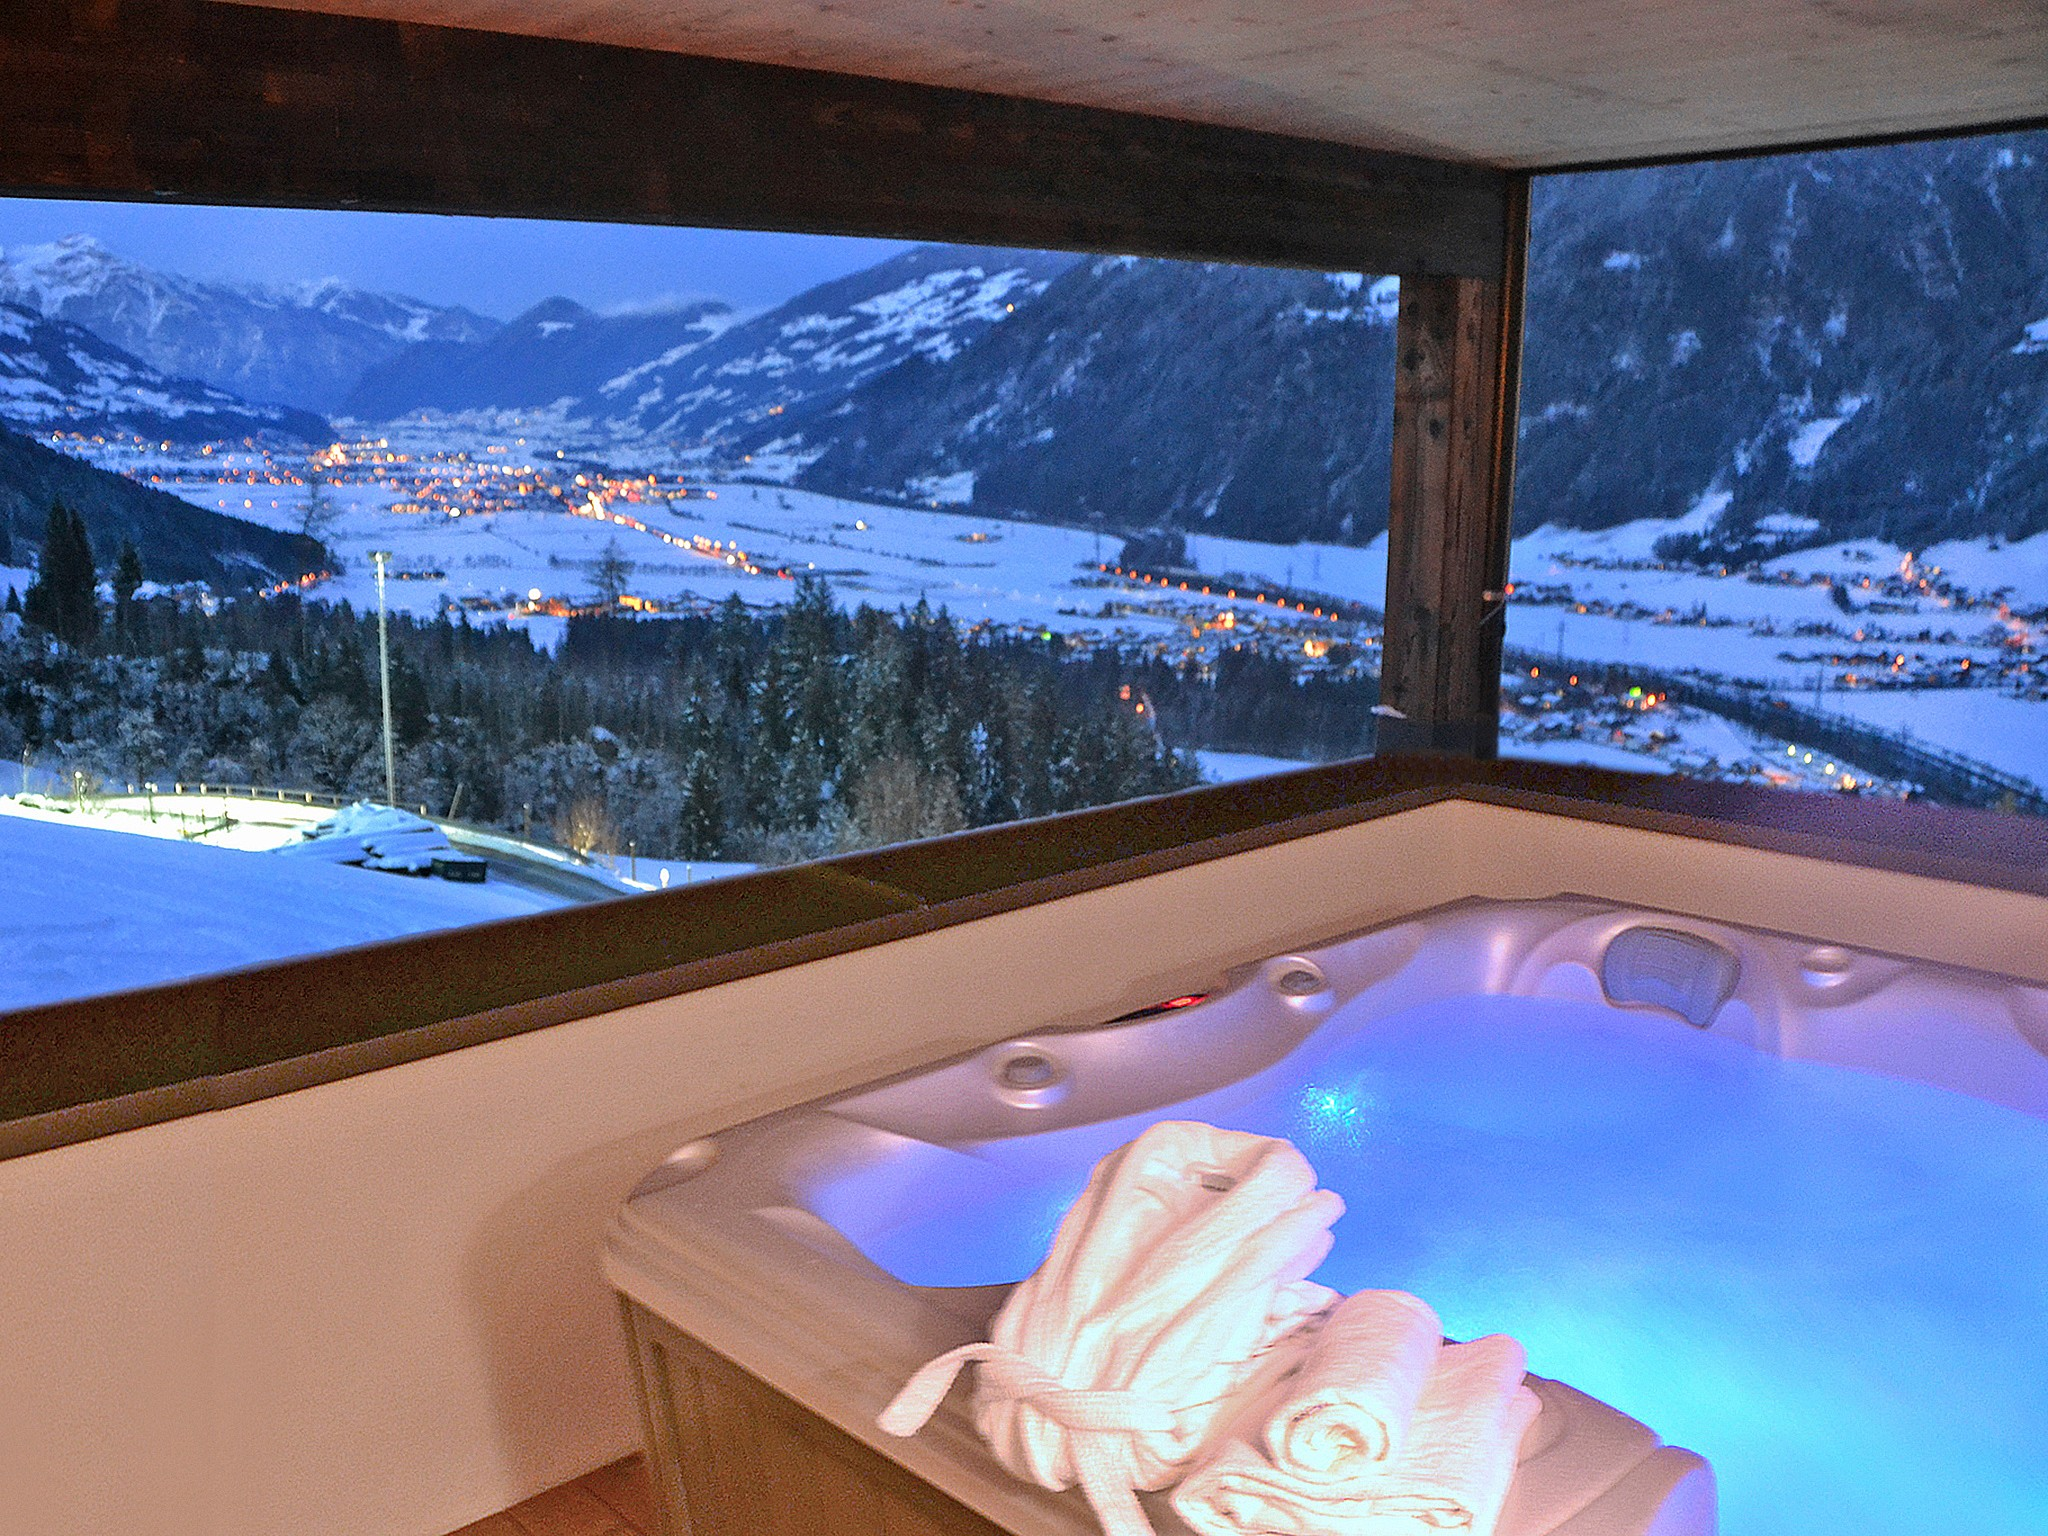 Spa Lodge Zillertal 2 - panoramic view